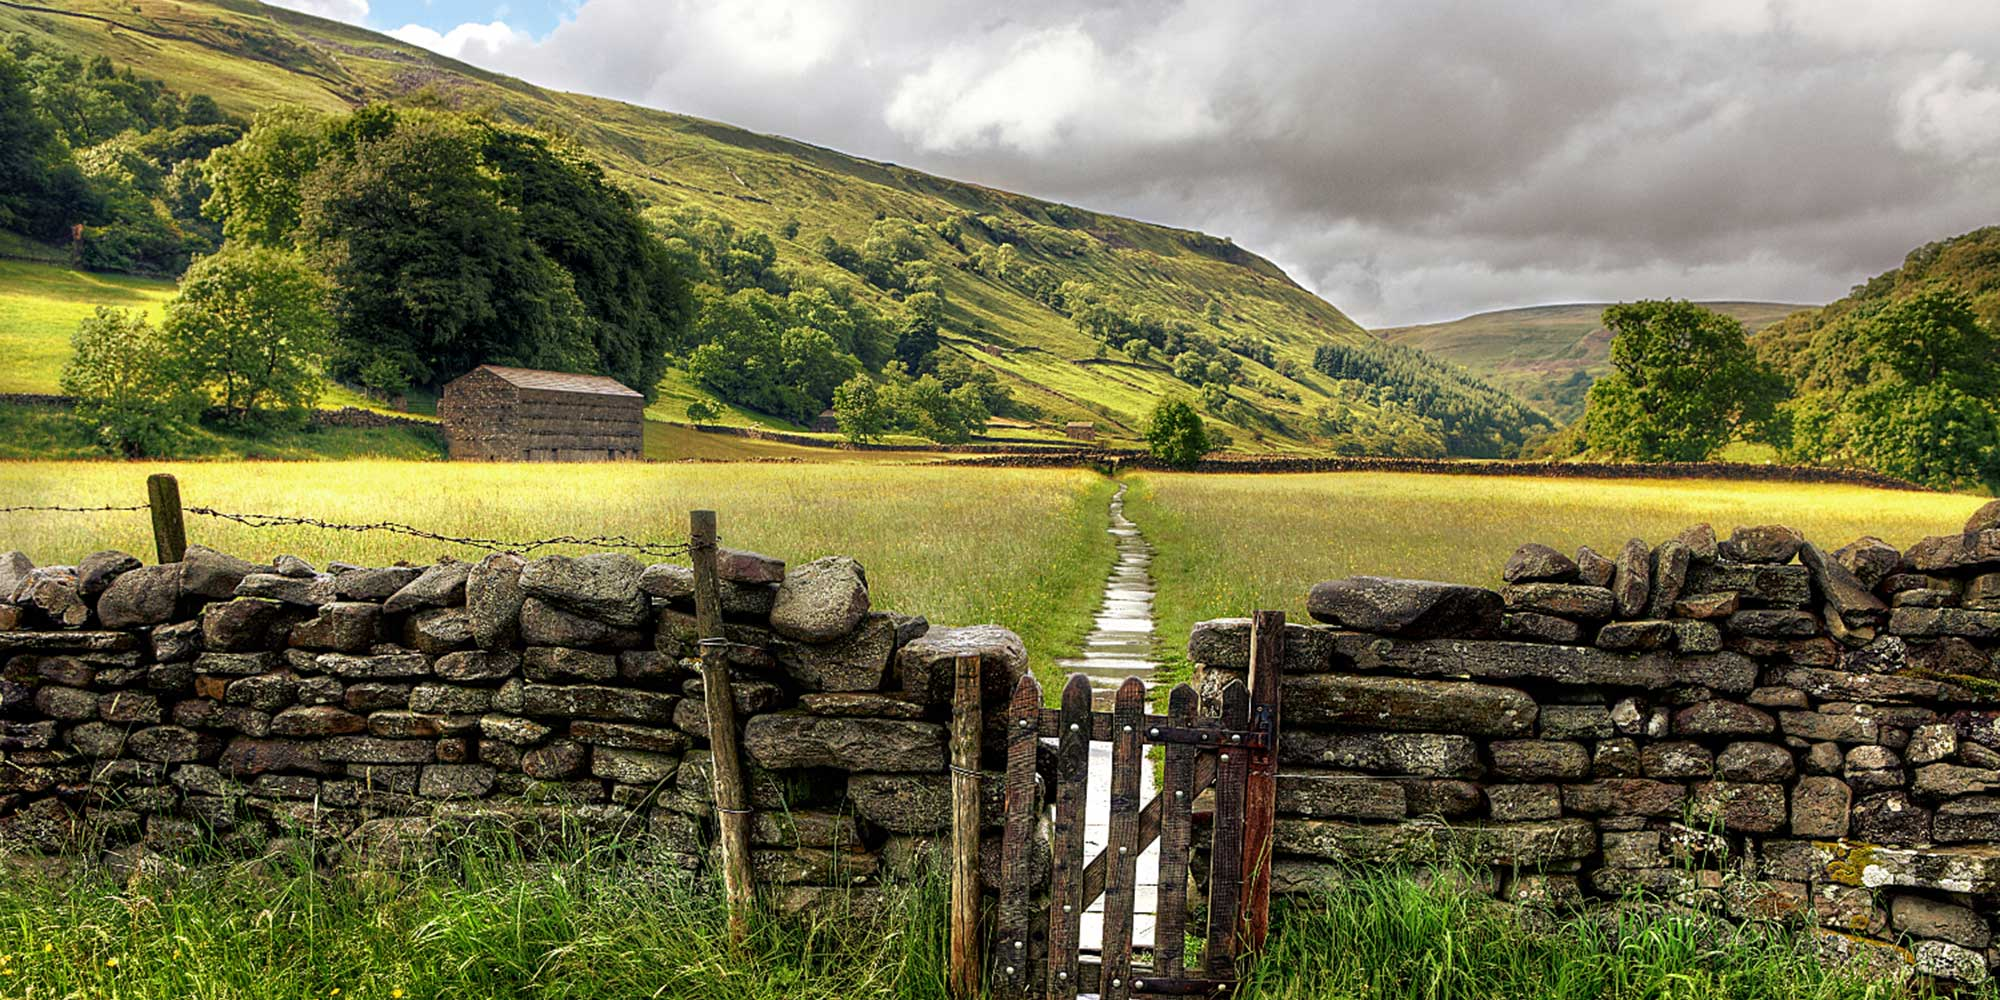 A gate in a stone wall, with a path across a flower meadow stretching into the distance